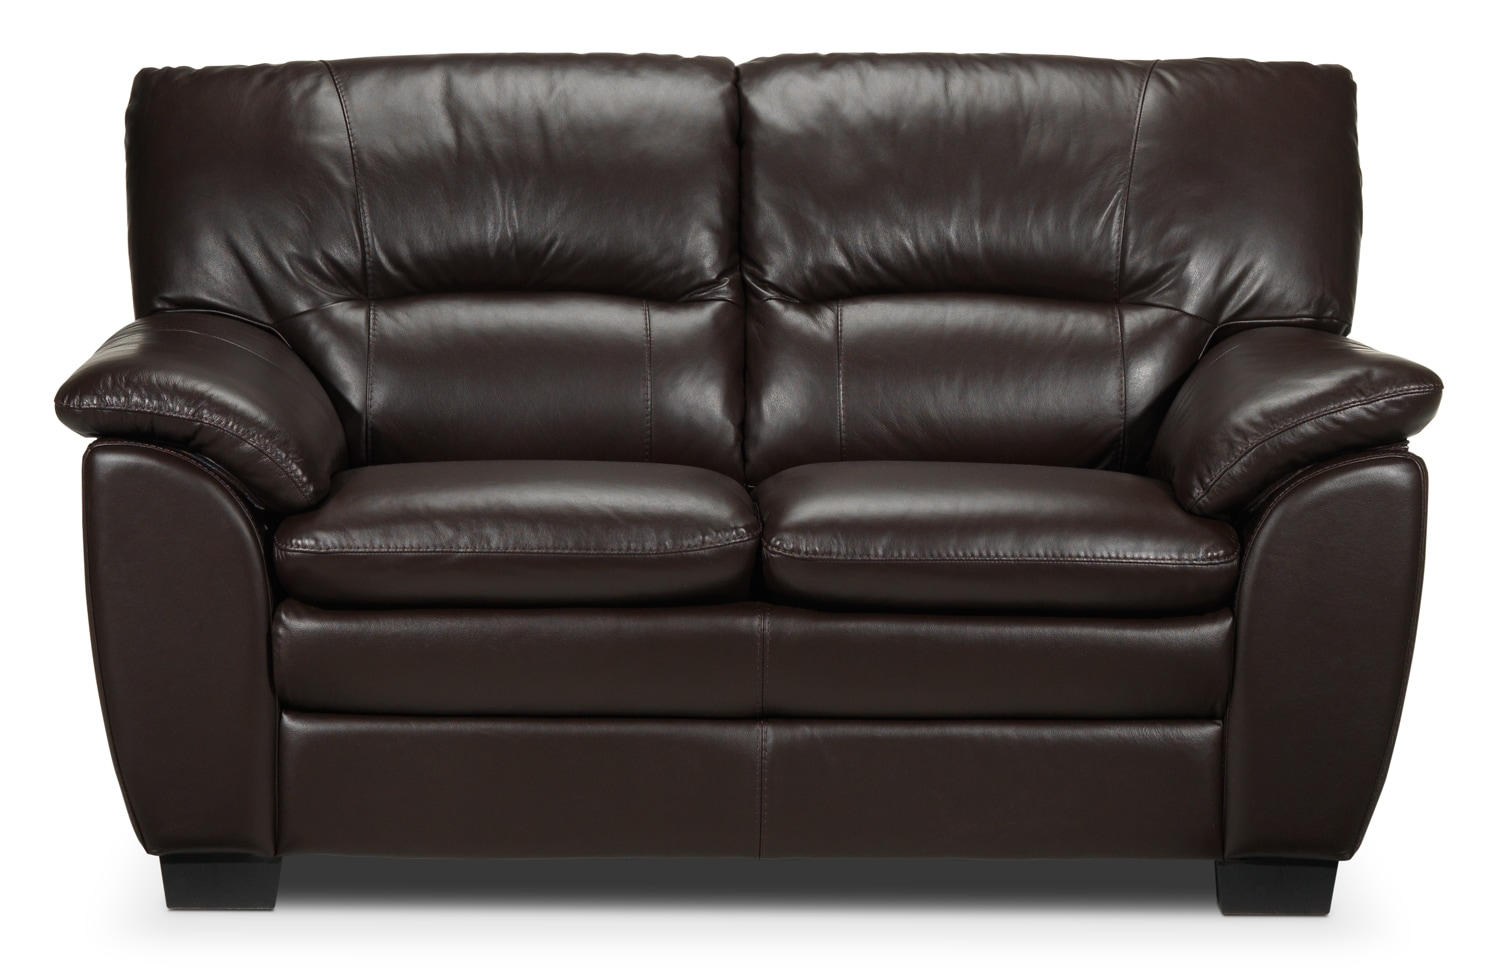 Rodero Loveseat - Brown